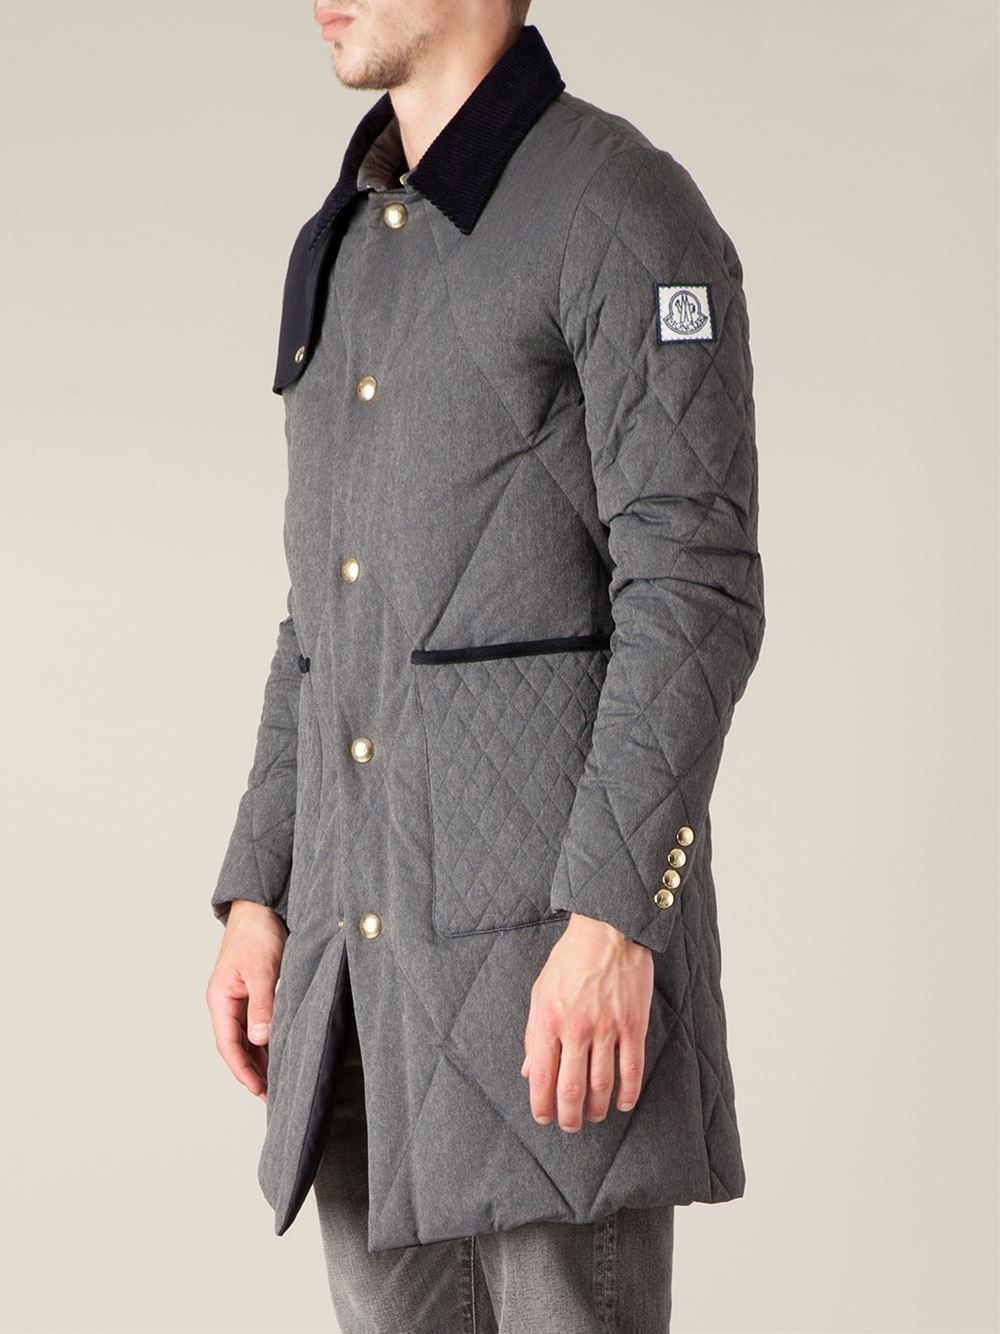 Moncler Gamme Bleu Padded Trench Coat In Gray For Men Lyst